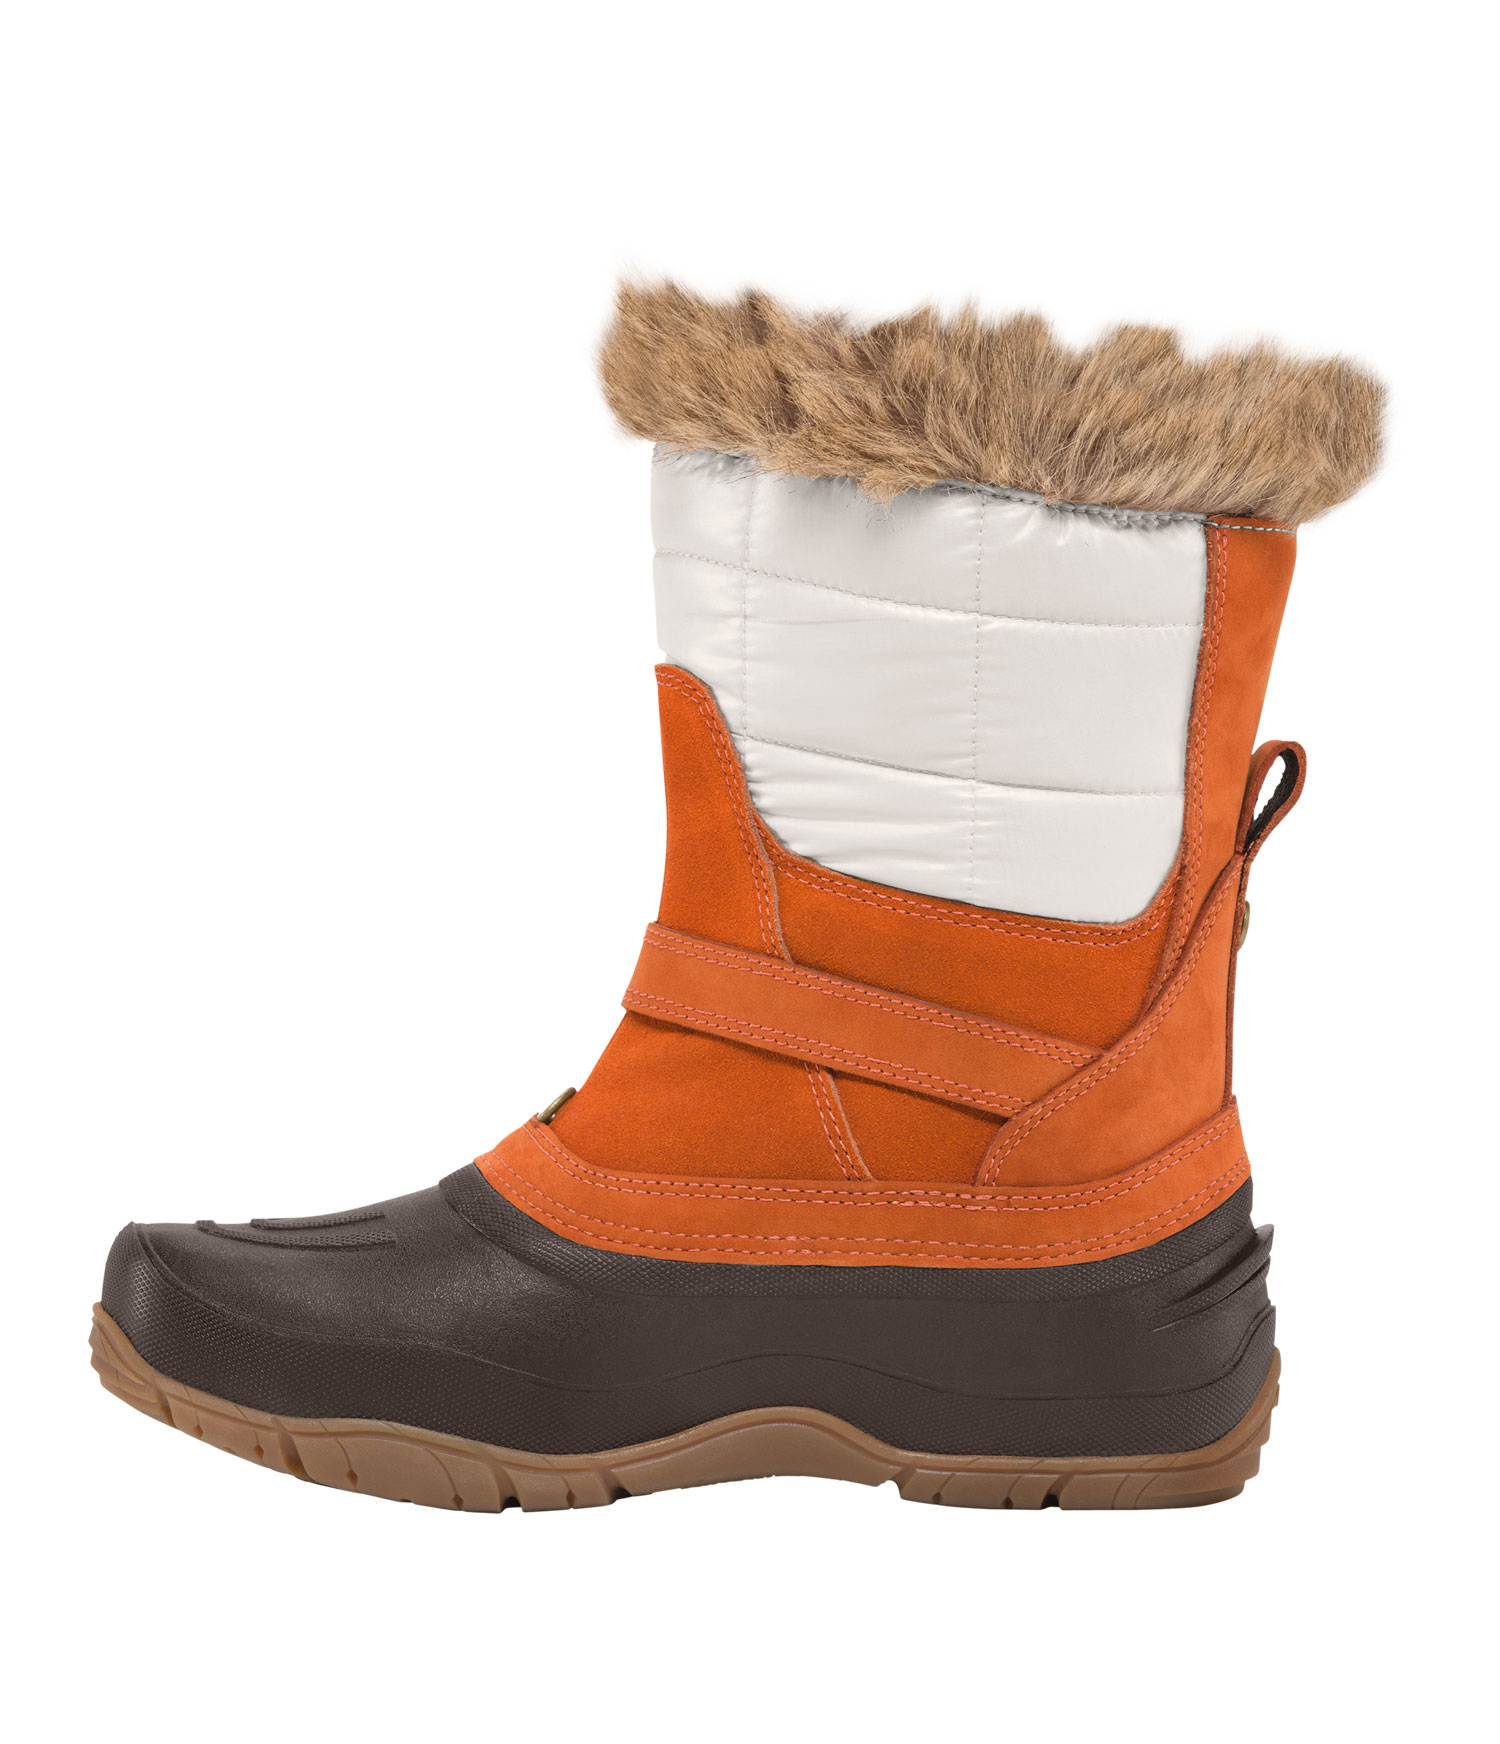 Designed specifically for women and ideal for icy commutes, an easy pull-on warm and waterproof boot made with performance materials and fashion-forward style.Key Features of The North Face Shellista Pull On Boots: Durable, water-resistant, 100% recycled PET ripstop shaft detail Waterproof, BLC-compliant full-grain and suede lather upper trims Cemented and seam-sealed waterproof construction 200g PrimaLoft Eco insulation Faux fur collar detail Anatomically engineered, injection-molded, waterproof TPR shell with forefoot flex grooves Dual-density internal midsole with three-quarter-length nylon shank Durable TNF Winter Grip rubber outsole base with IcePick temperature-sensitive lugs for superior winter traction - $97.95